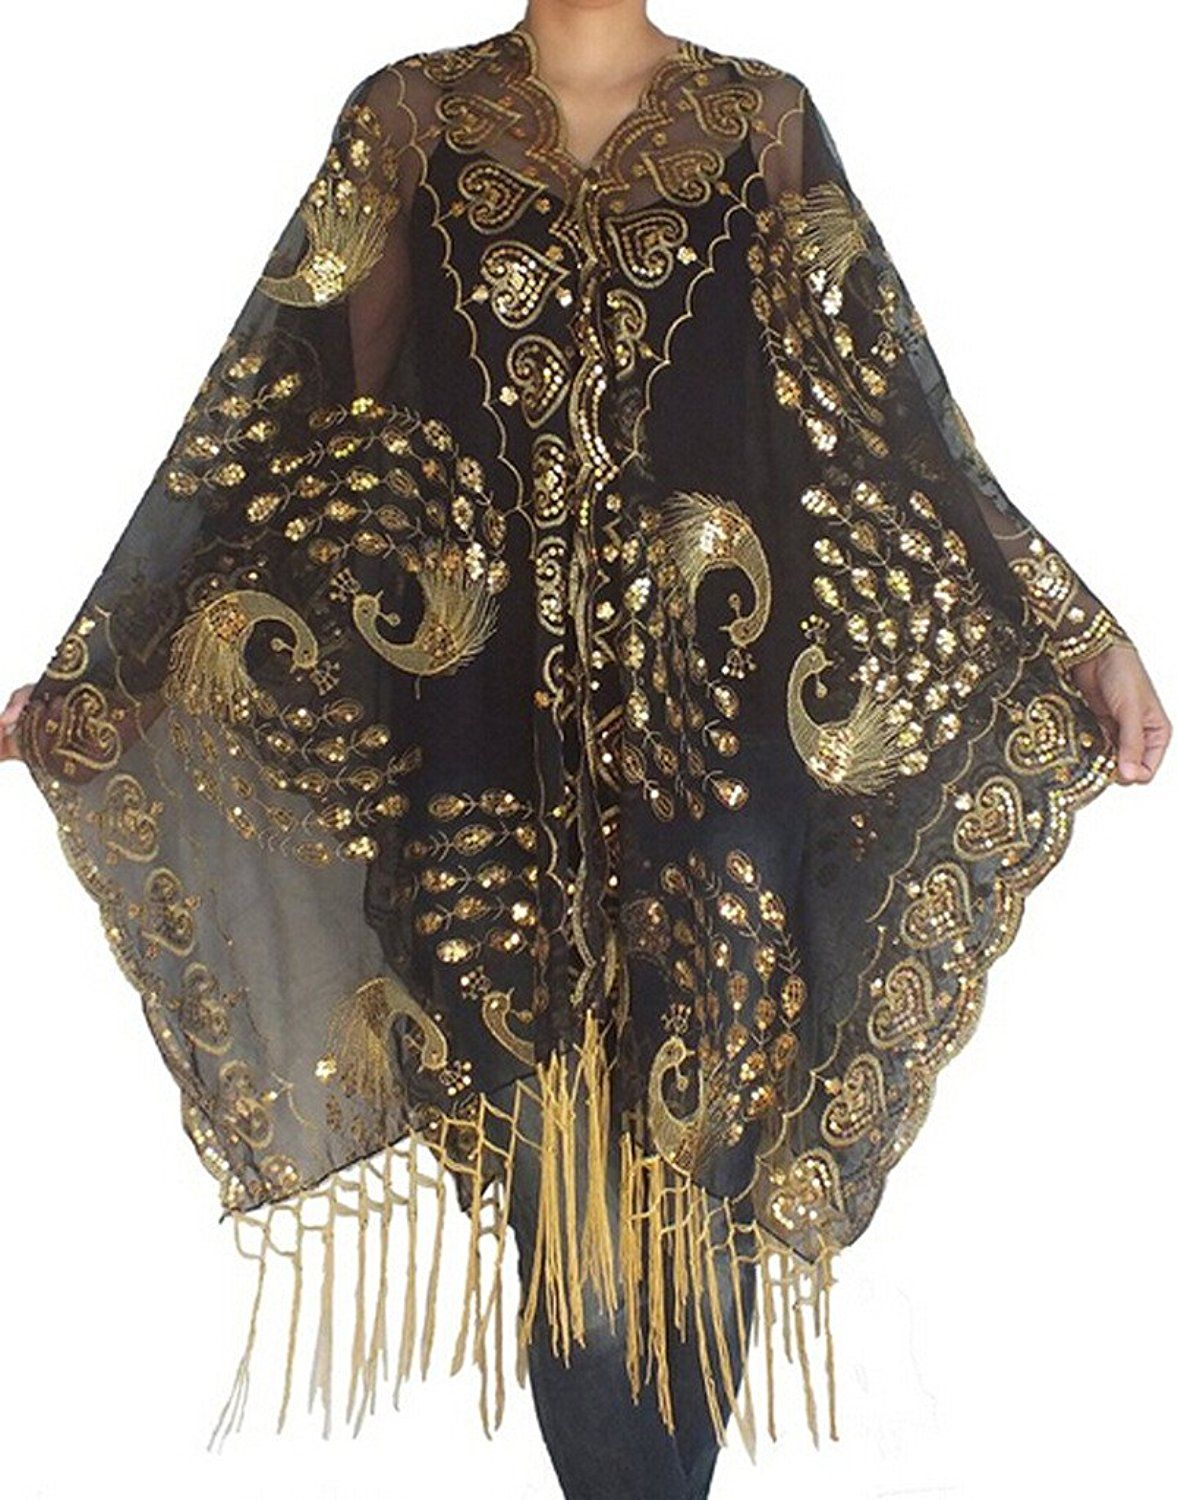 01794532617 1910s 1920s Peacock Phoenix Embroidery Sequins Wedding Scarf Shawls  19.99  AT Vintagedancer.com